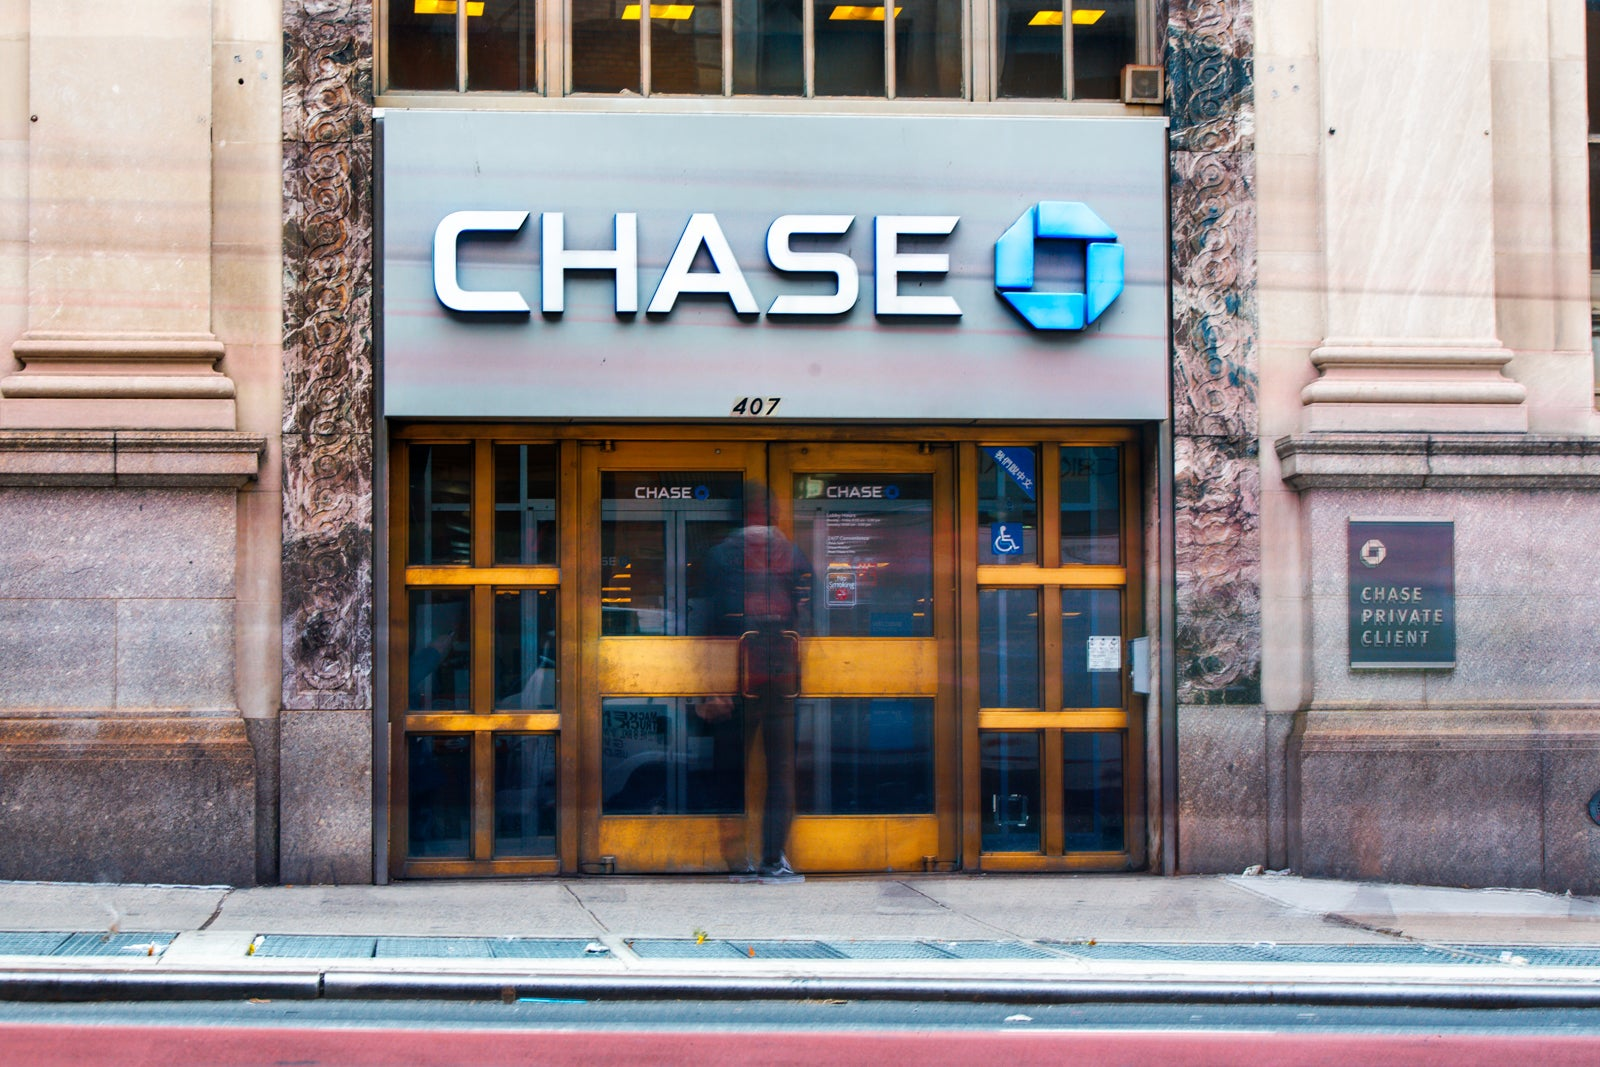 Chase credit cards – The minimum credit score you need for each card